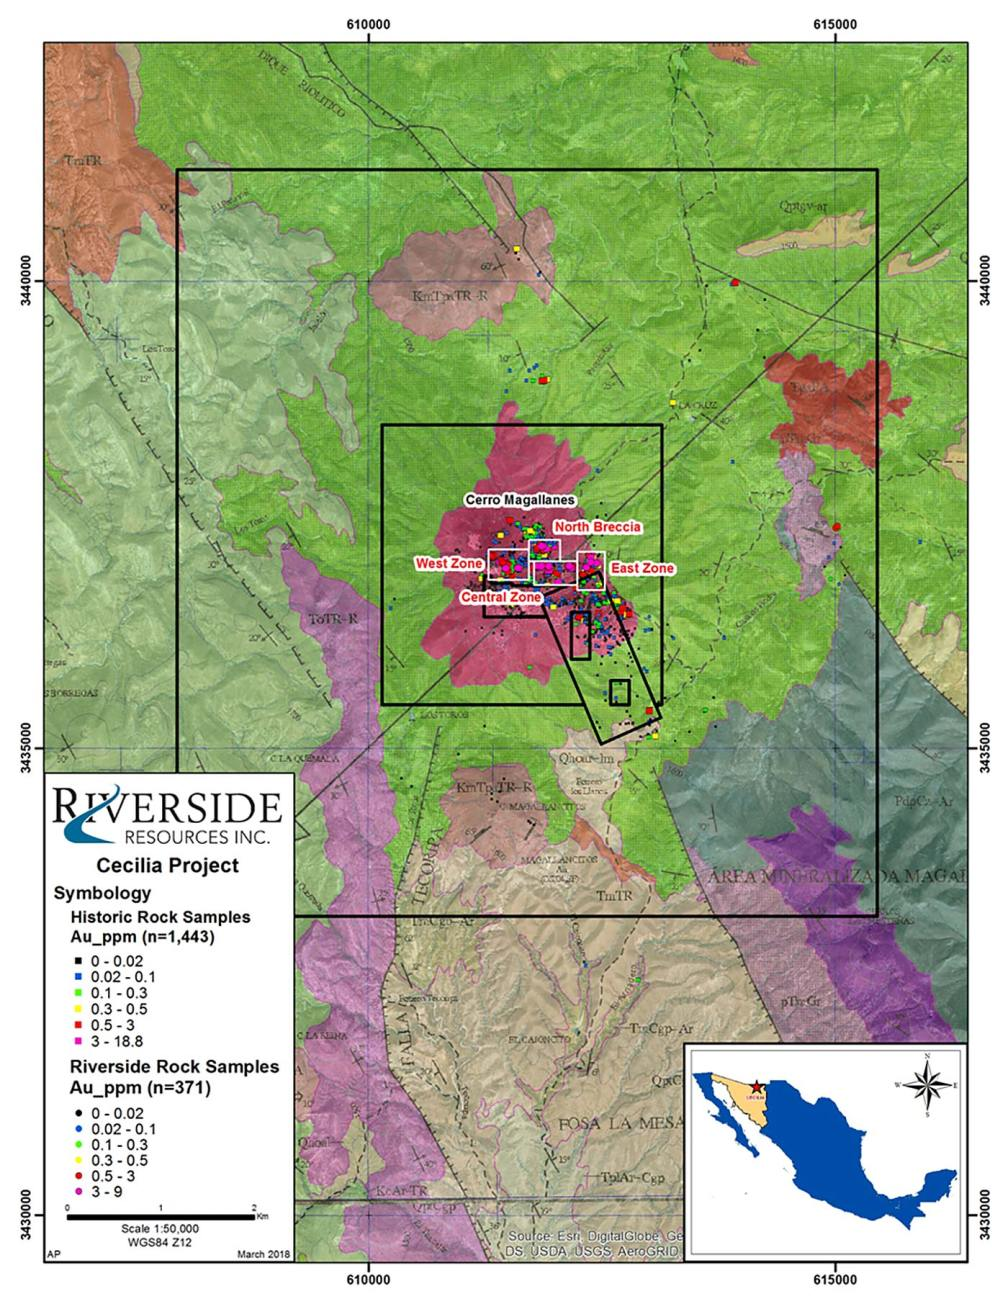 In March of 2018, Riverside was granted the mineral rights to the Cecilia 1 concession, which had been applied for in November of 2017. Obtaining the Cecilia 1 claim significantly increases the total area covered by Riverside's Cecilia Gold Project. The expanded project area now covers approximately 6,000 hectares, about 6.7 times greater than the original area of the Project.